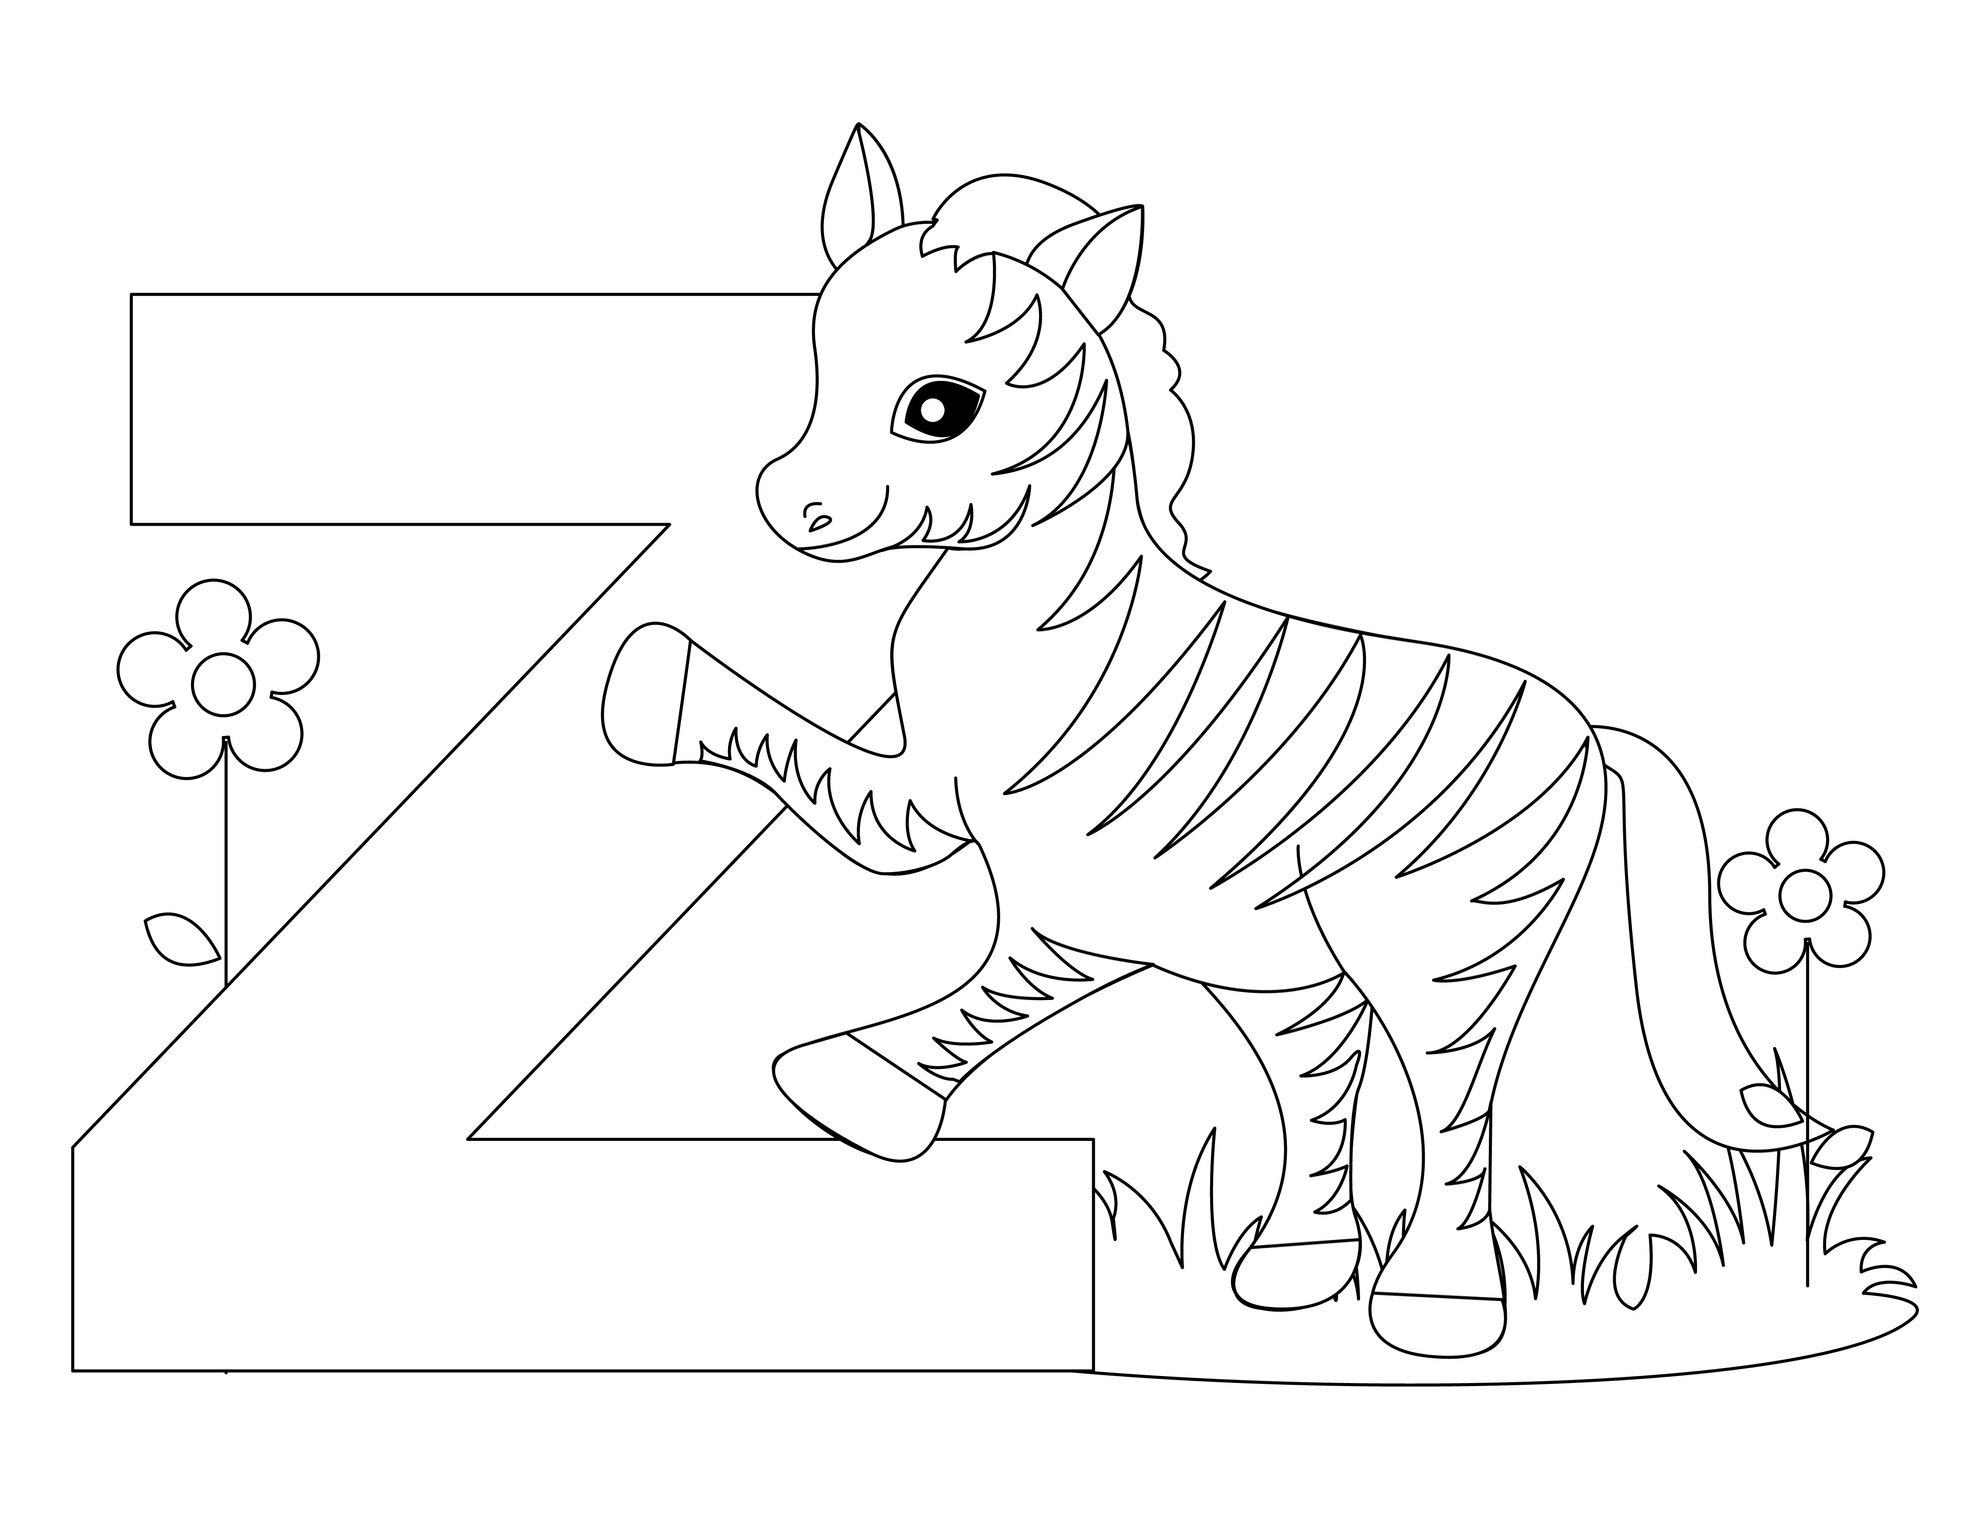 Animal Alphabet Letter Z For Zebra Zebra Coloring Pages